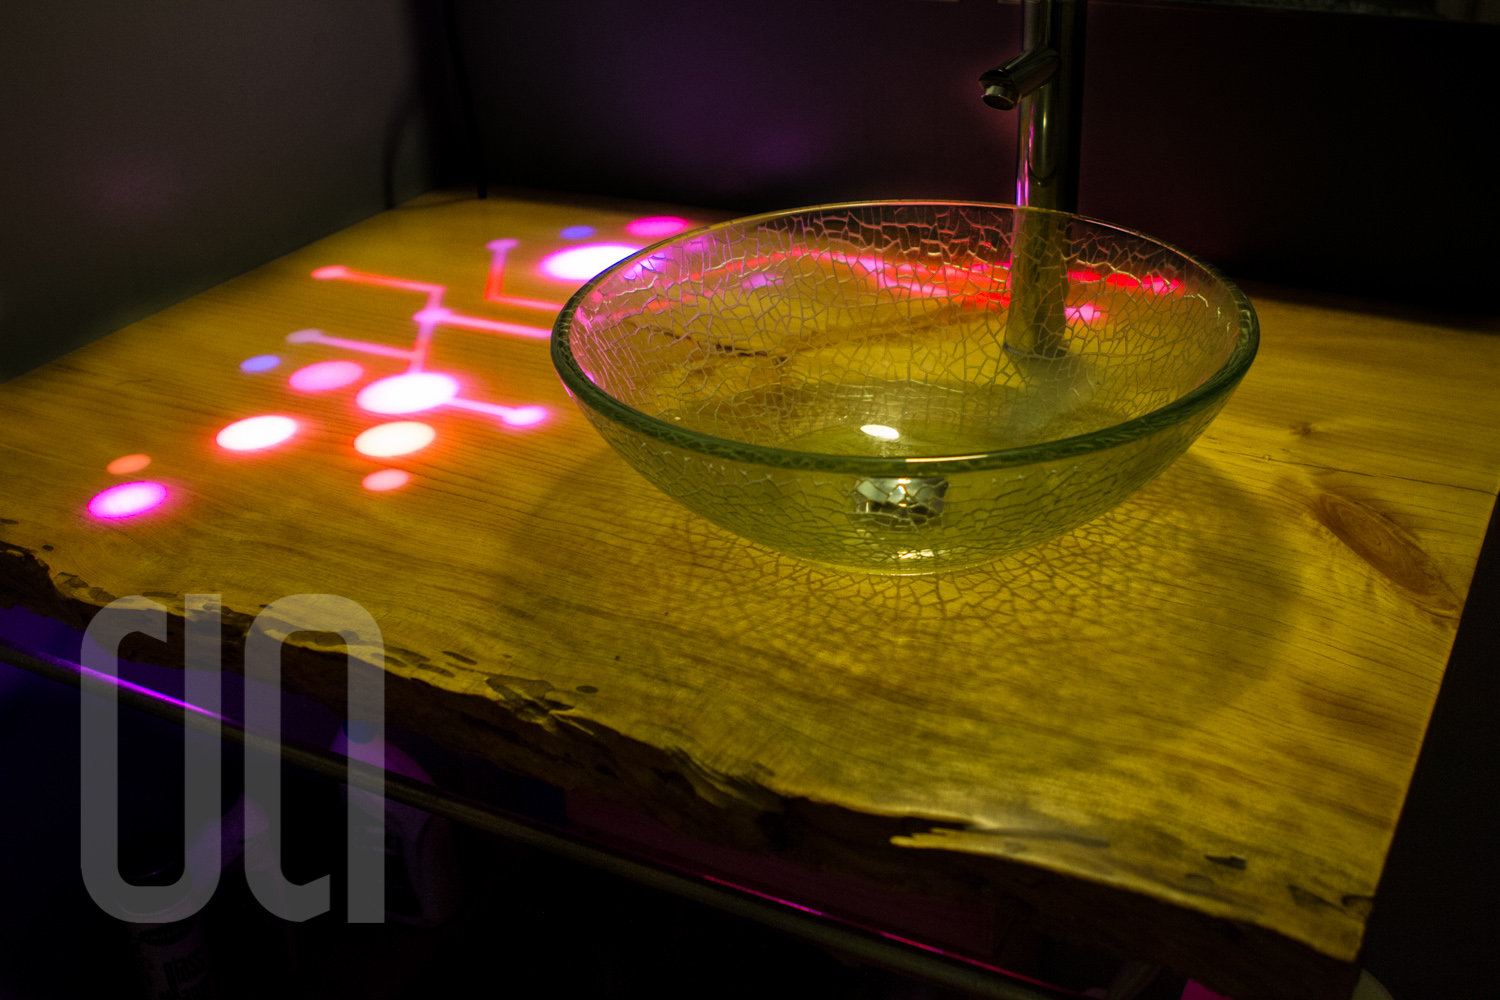 Case Study: Embedding Animated Lighting in Polished Surfaces